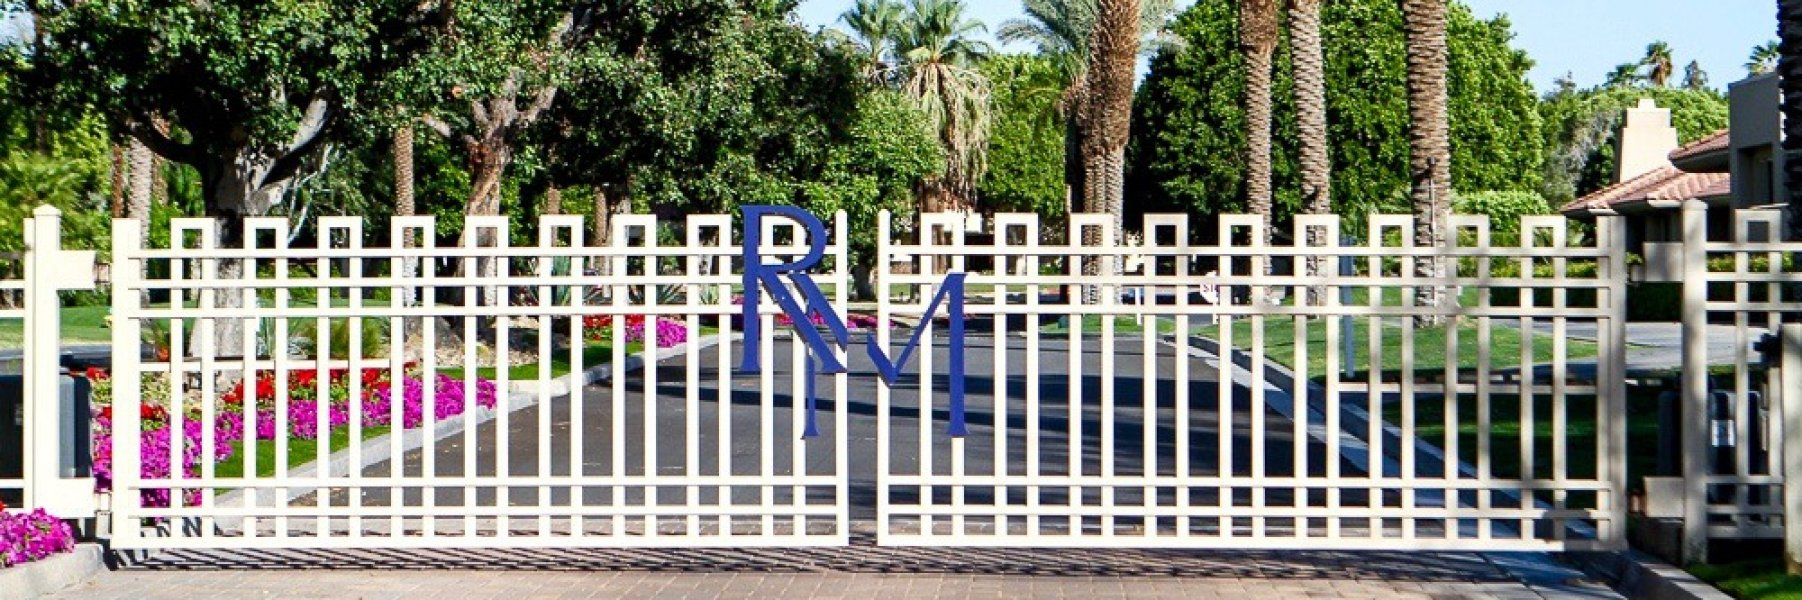 Rancho Mirage Country Club is a community of homes in Rancho Mirage California